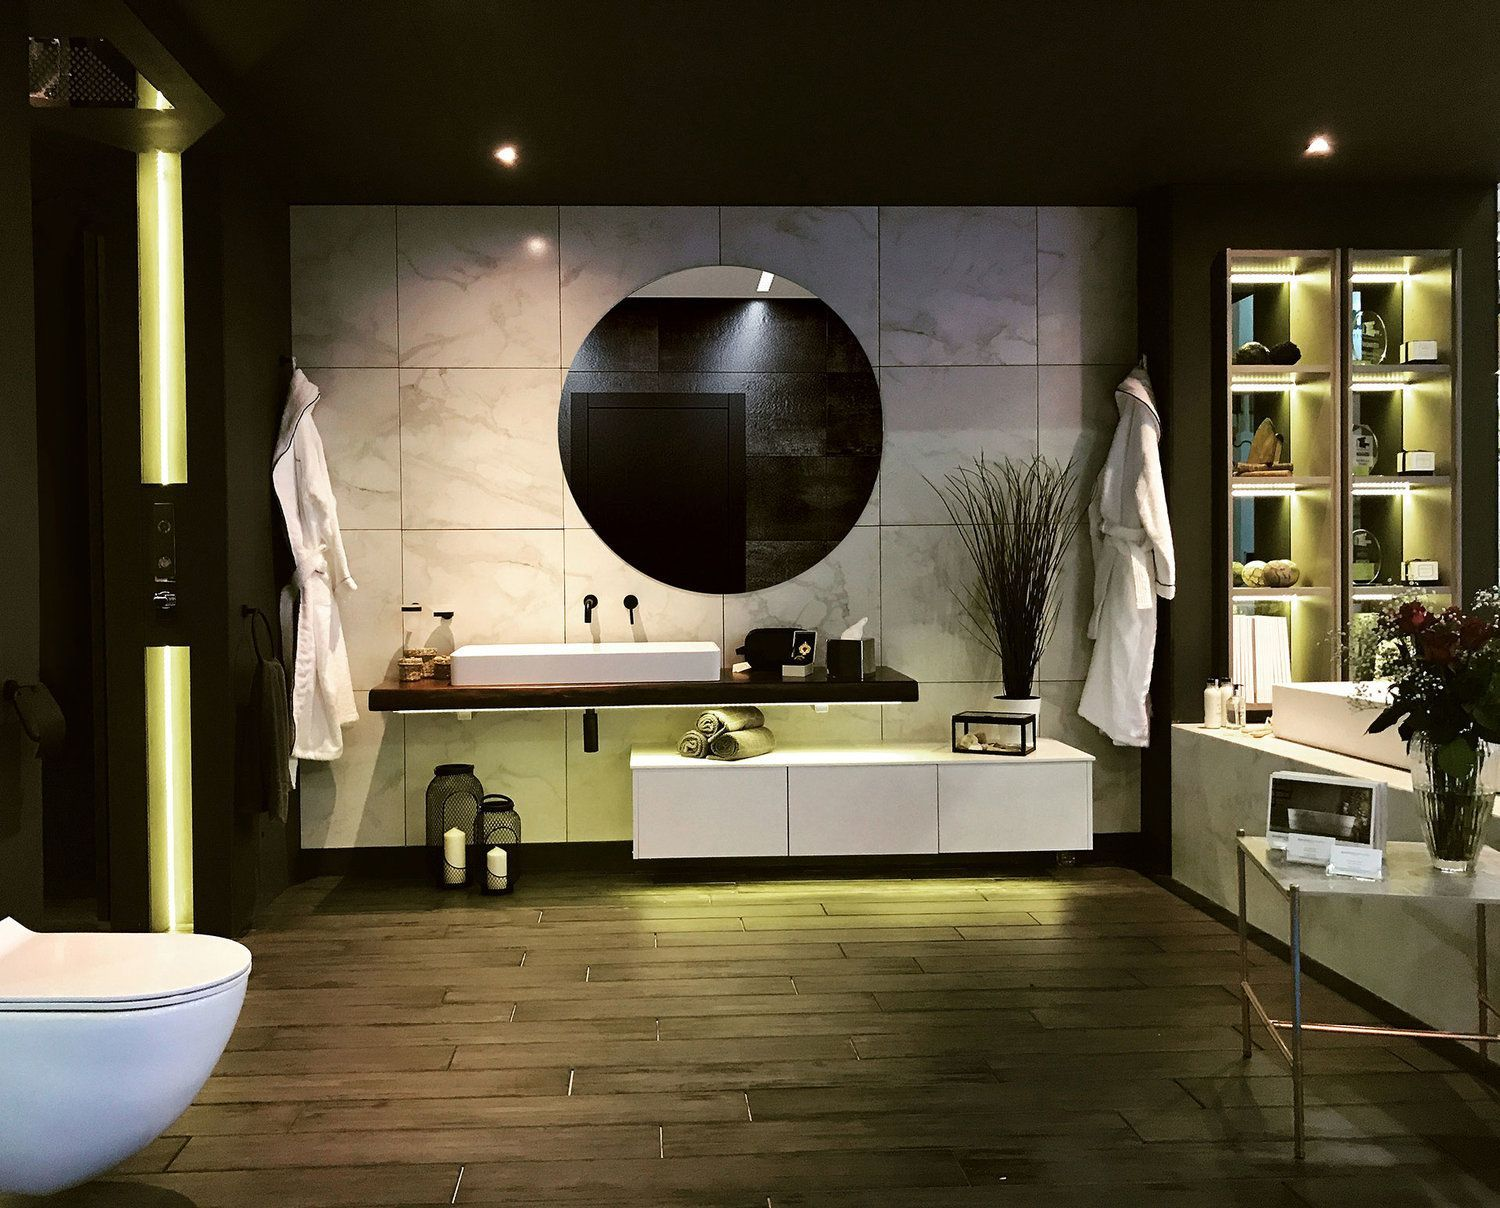 Hdd Pictures Of How To Create Luxury Bathrooms Bathroom Design Luxury Bathroom Design Luxury Bathroom